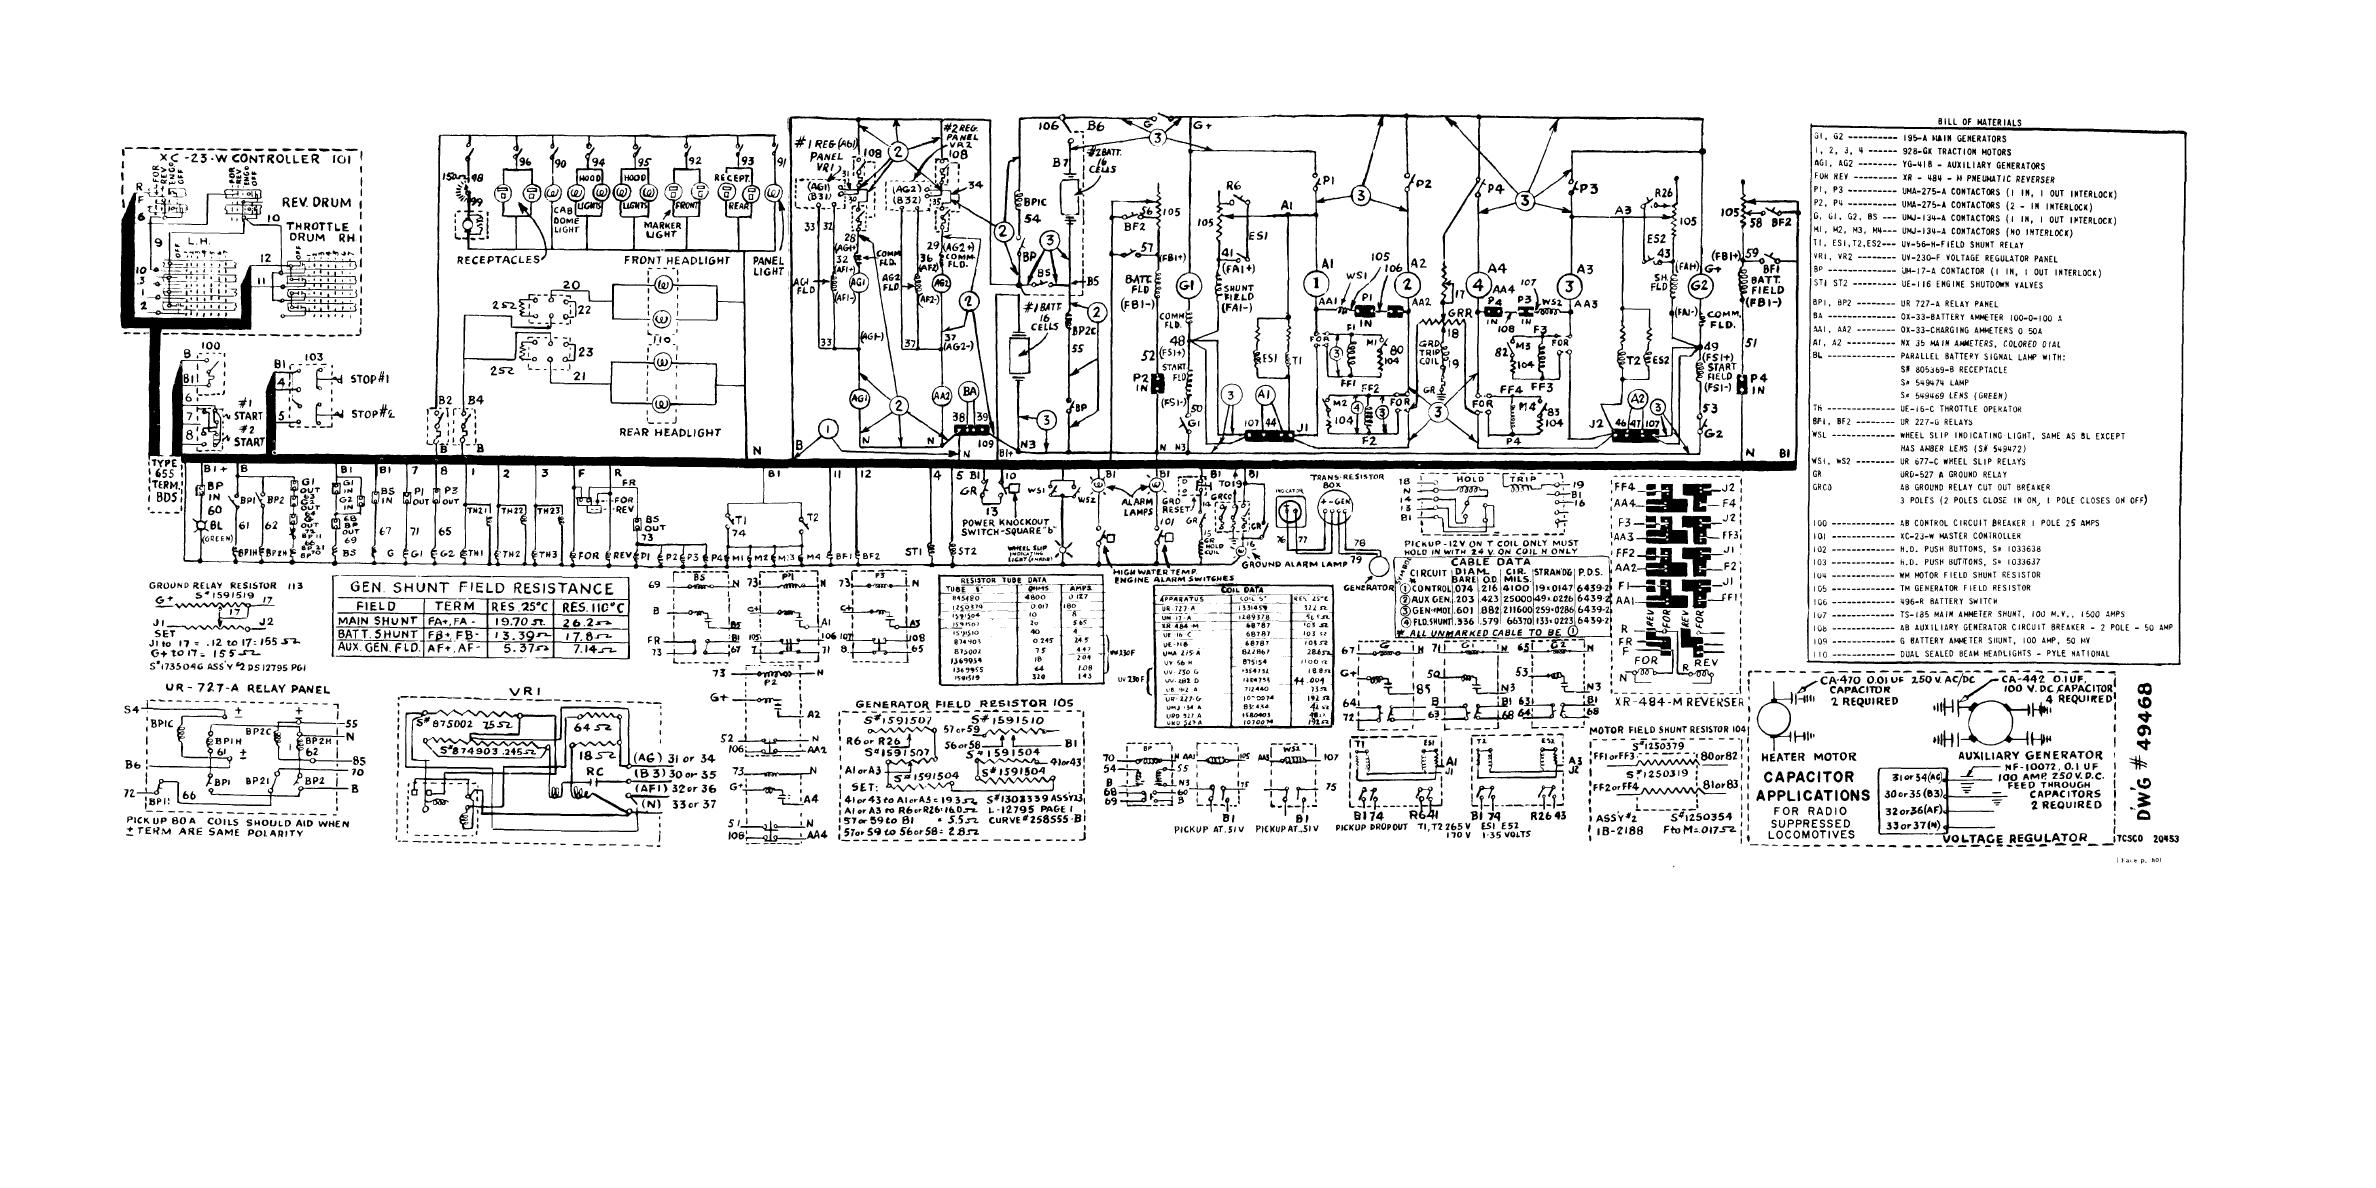 Figure 44 Locomotive wiring diagram – Locomotive Engine Diagram Simple